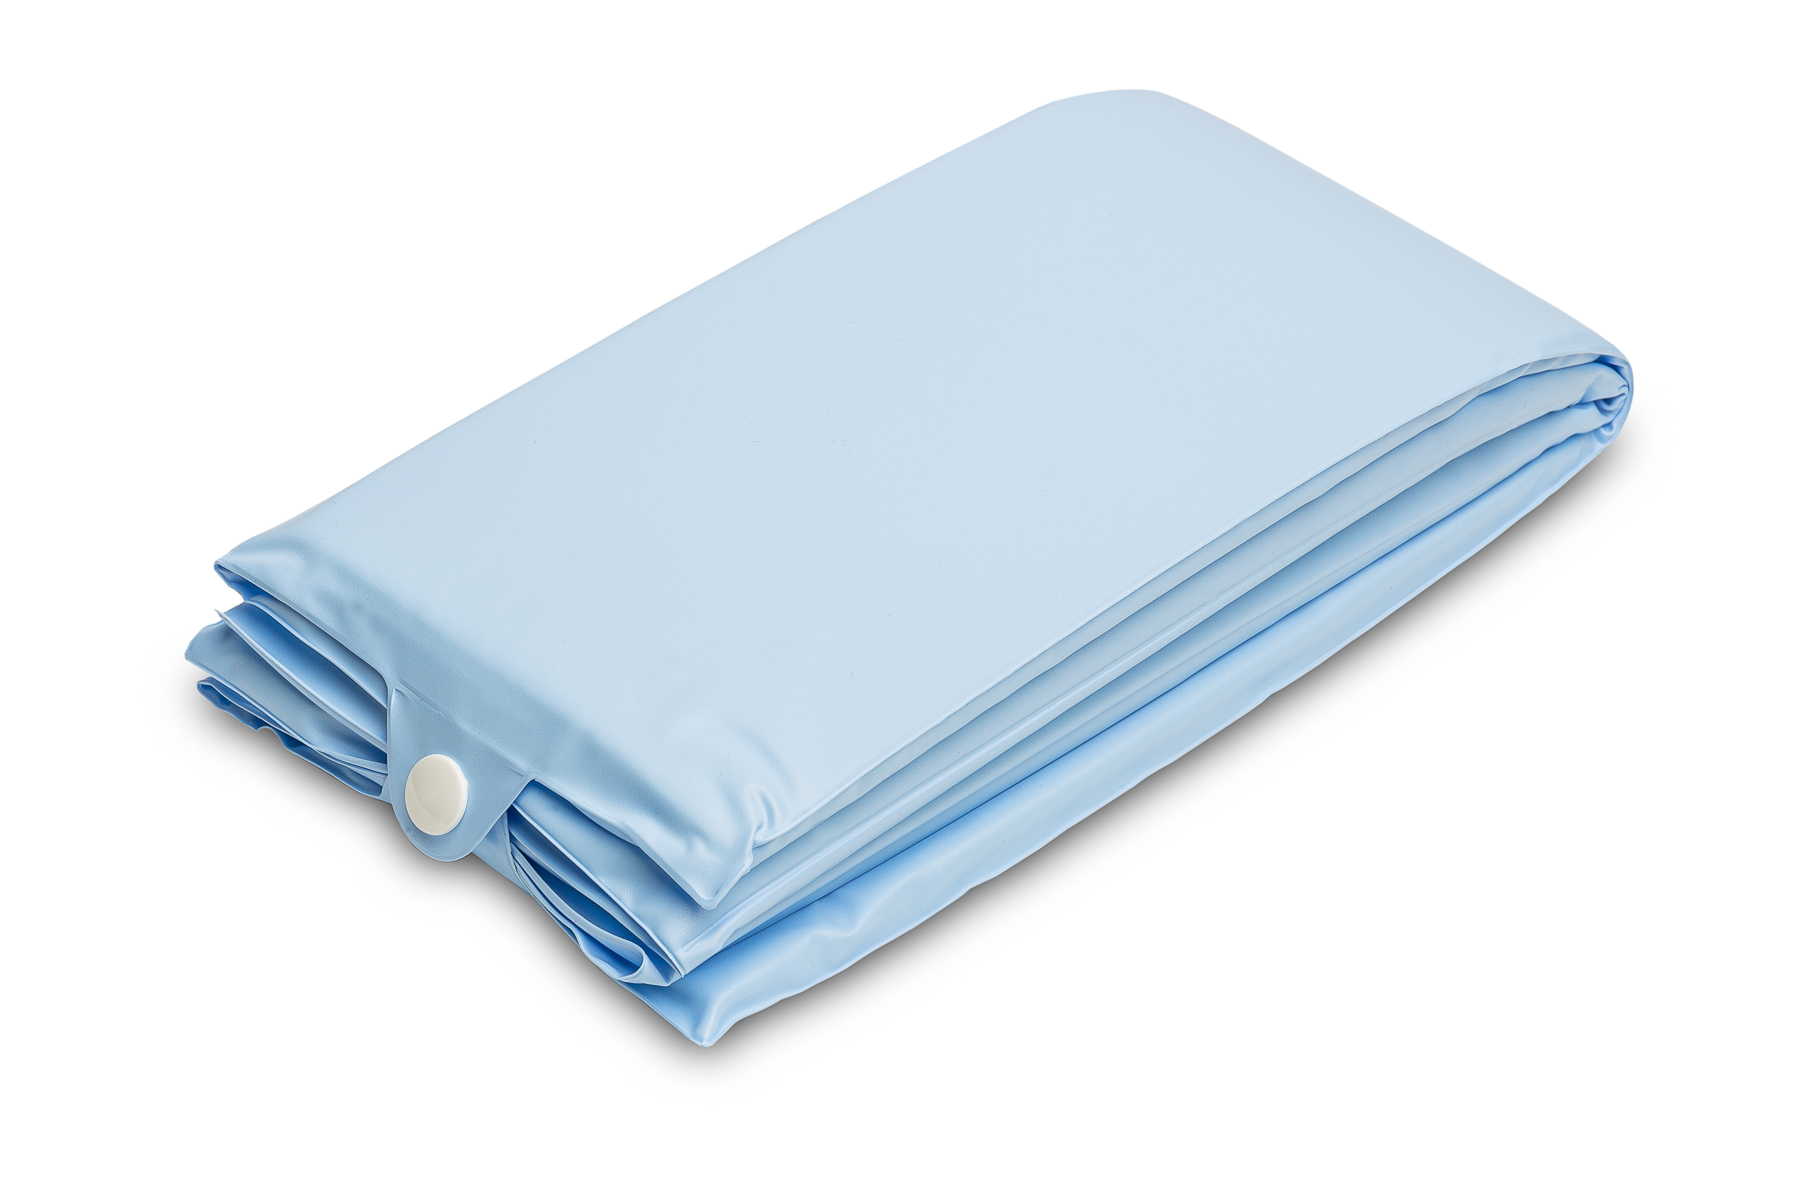 Tourist mat/changing mat – blue